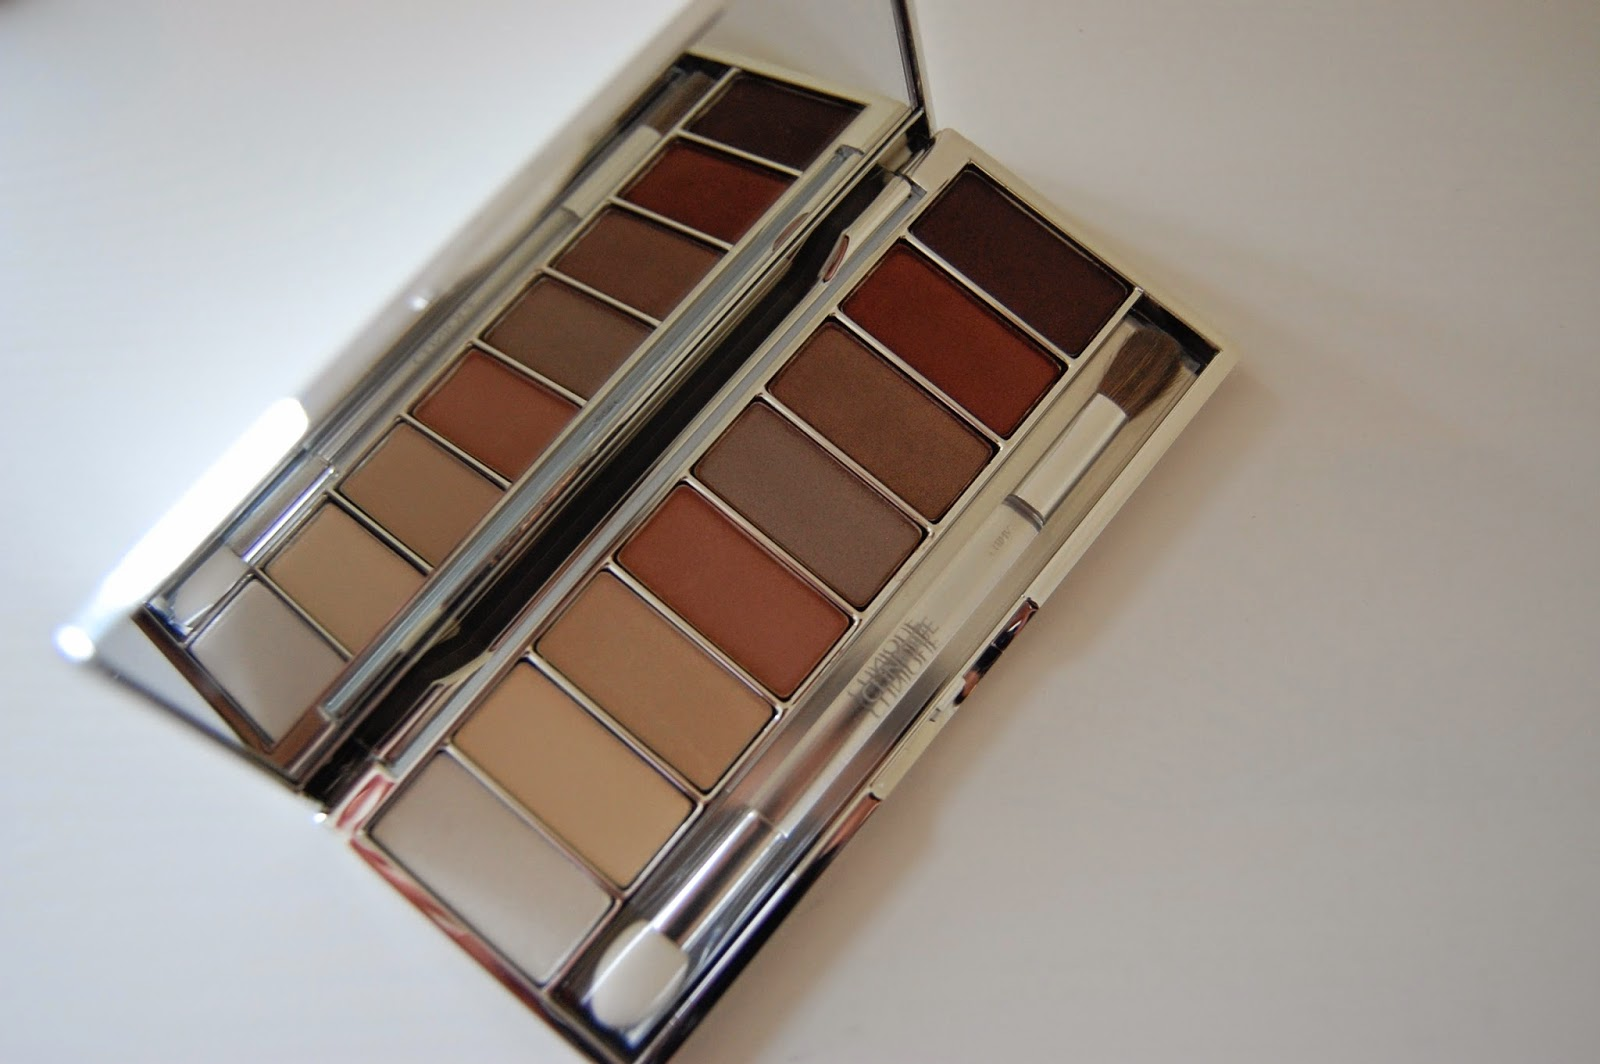 Clinique-All-About-Shadow-8-Pan-Palette